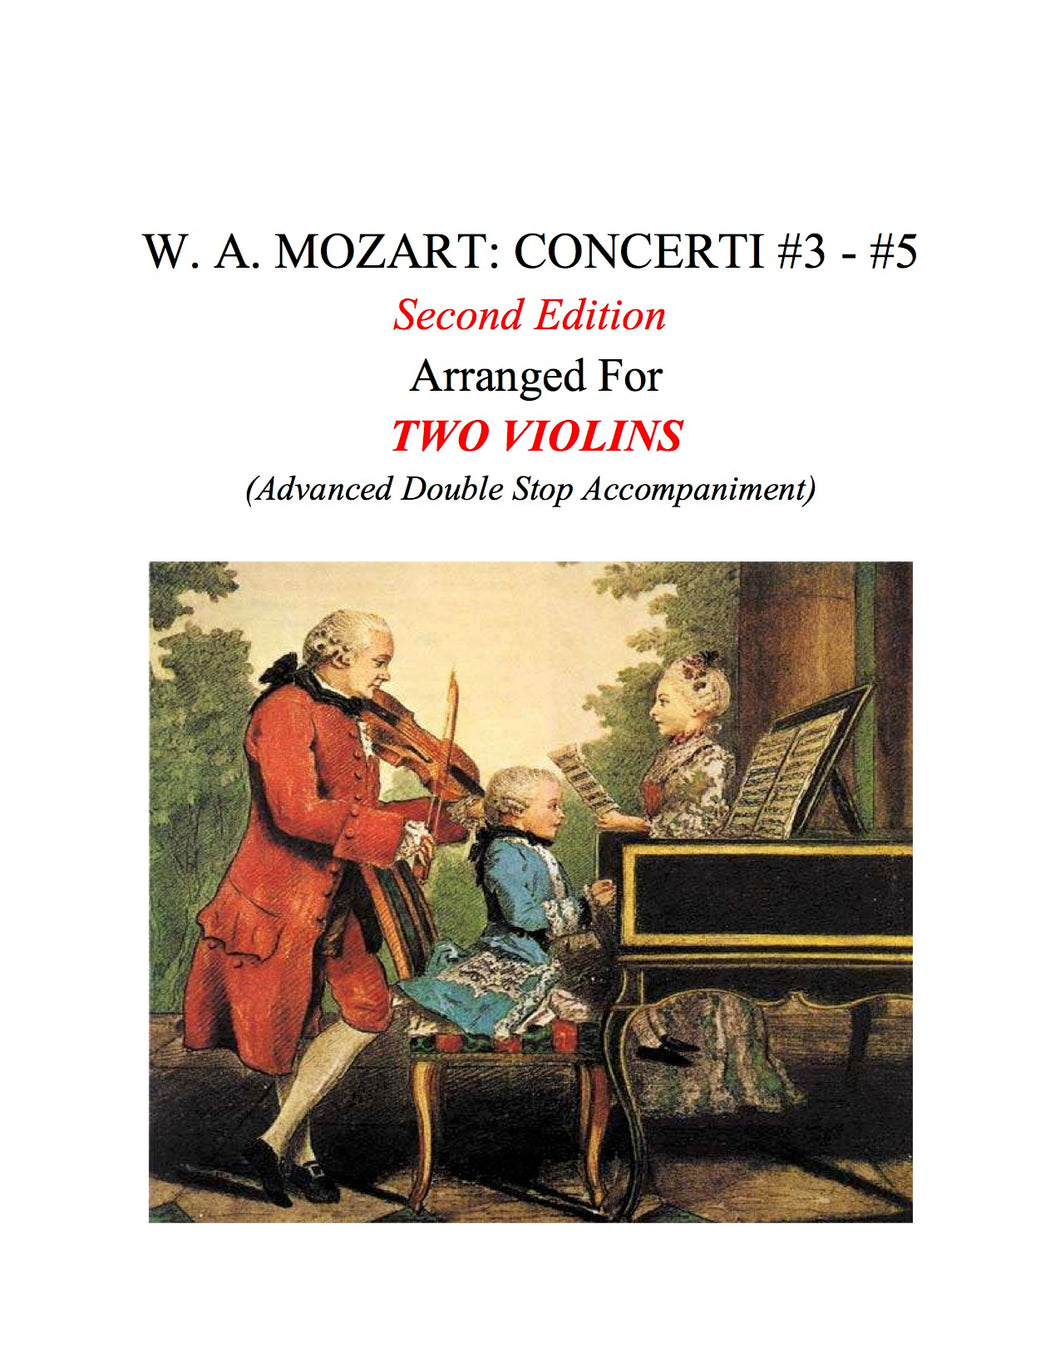 060B - W. A. MOZART: CONCERTI #3-#5: Second Edition (Double Stop Acc. with Digital Score)